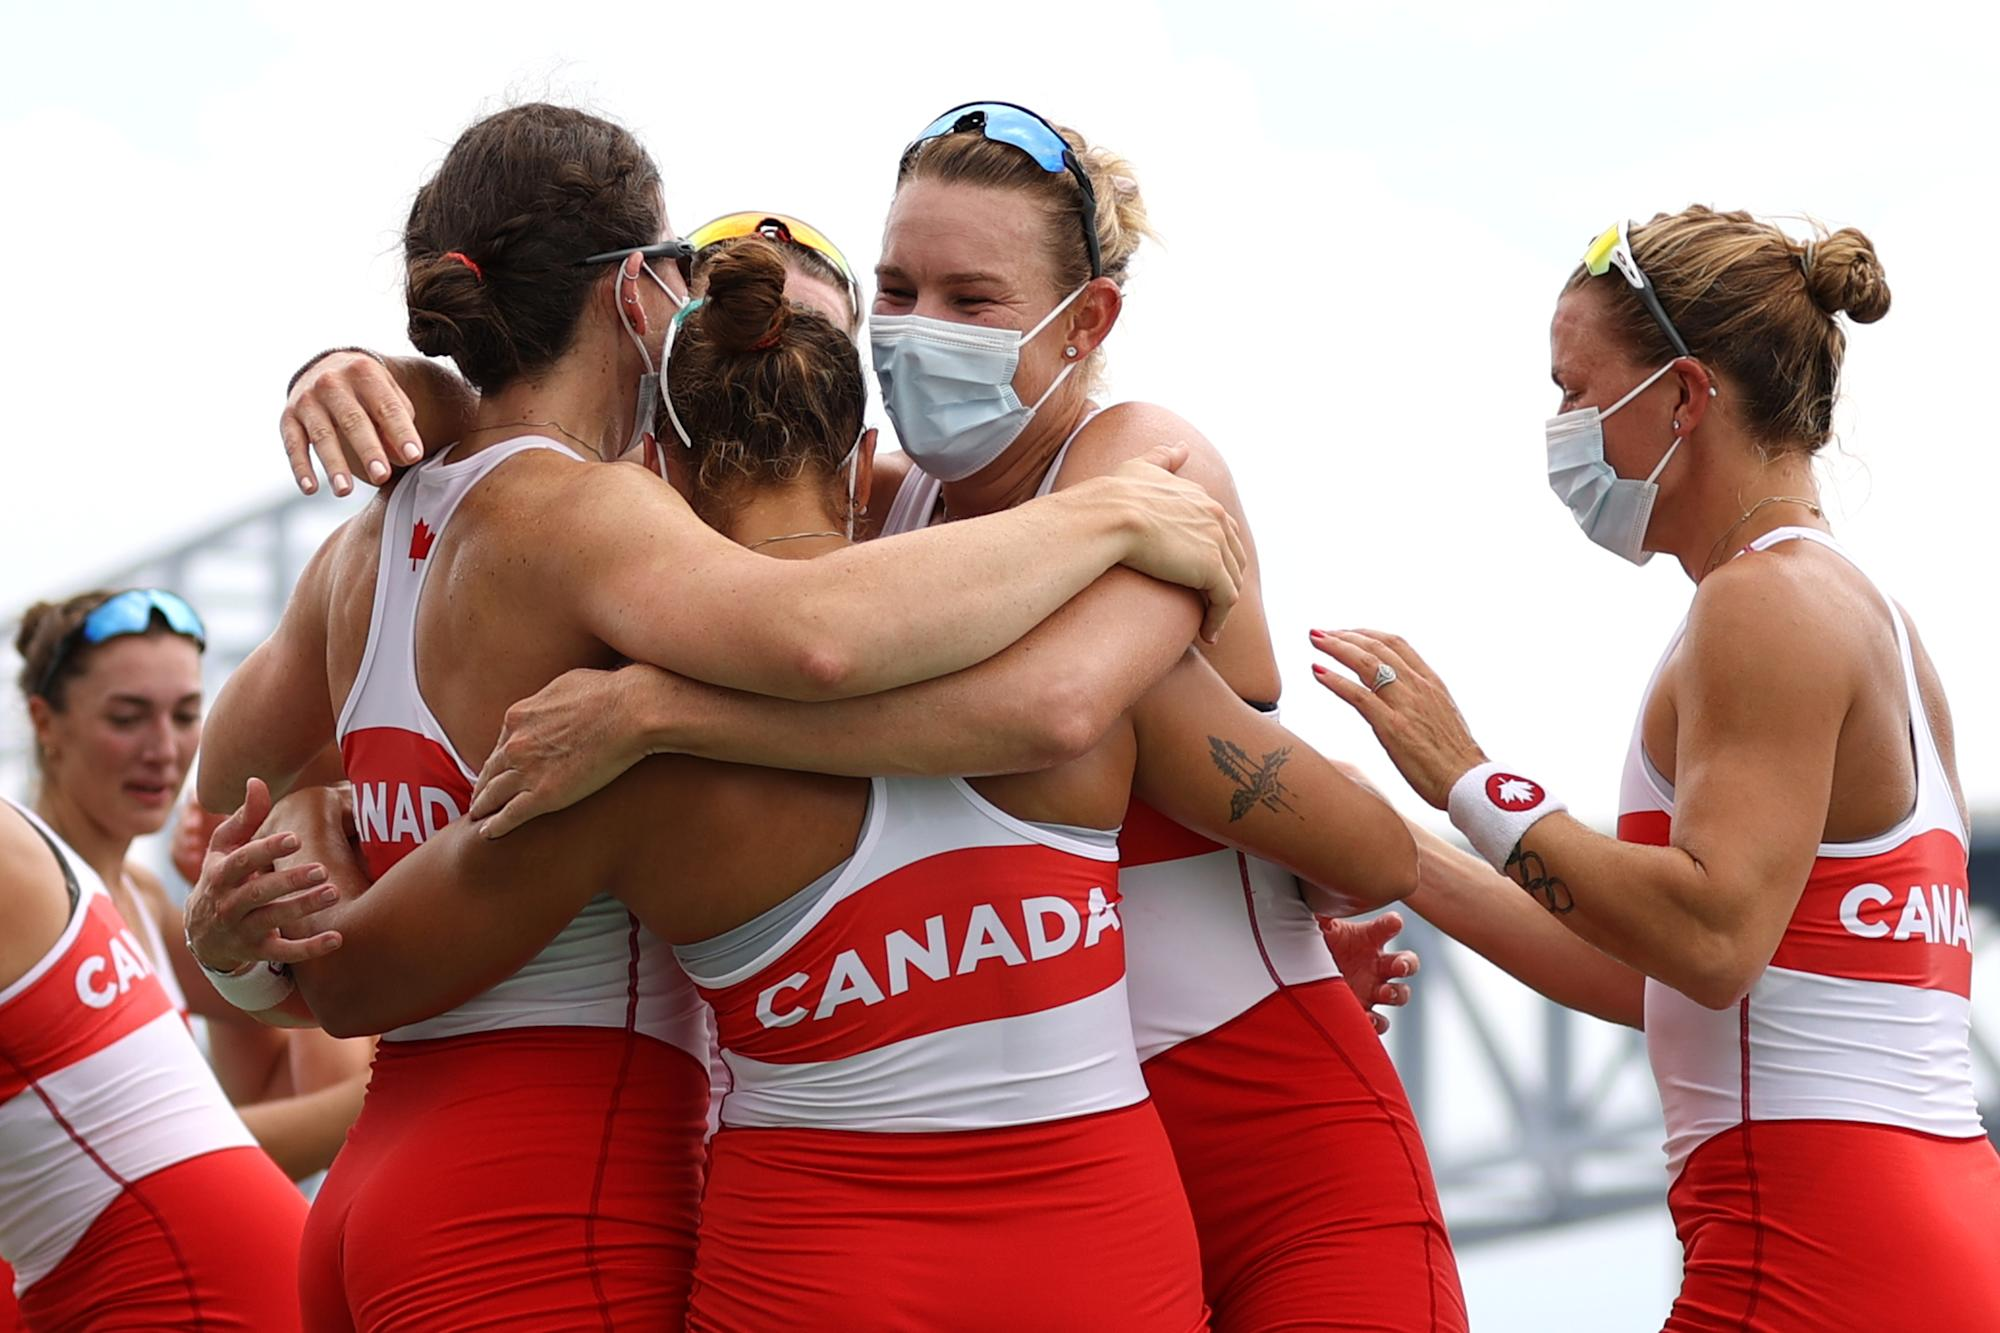 Canadian women's eight crew captures rowing gold; first in event since 1992